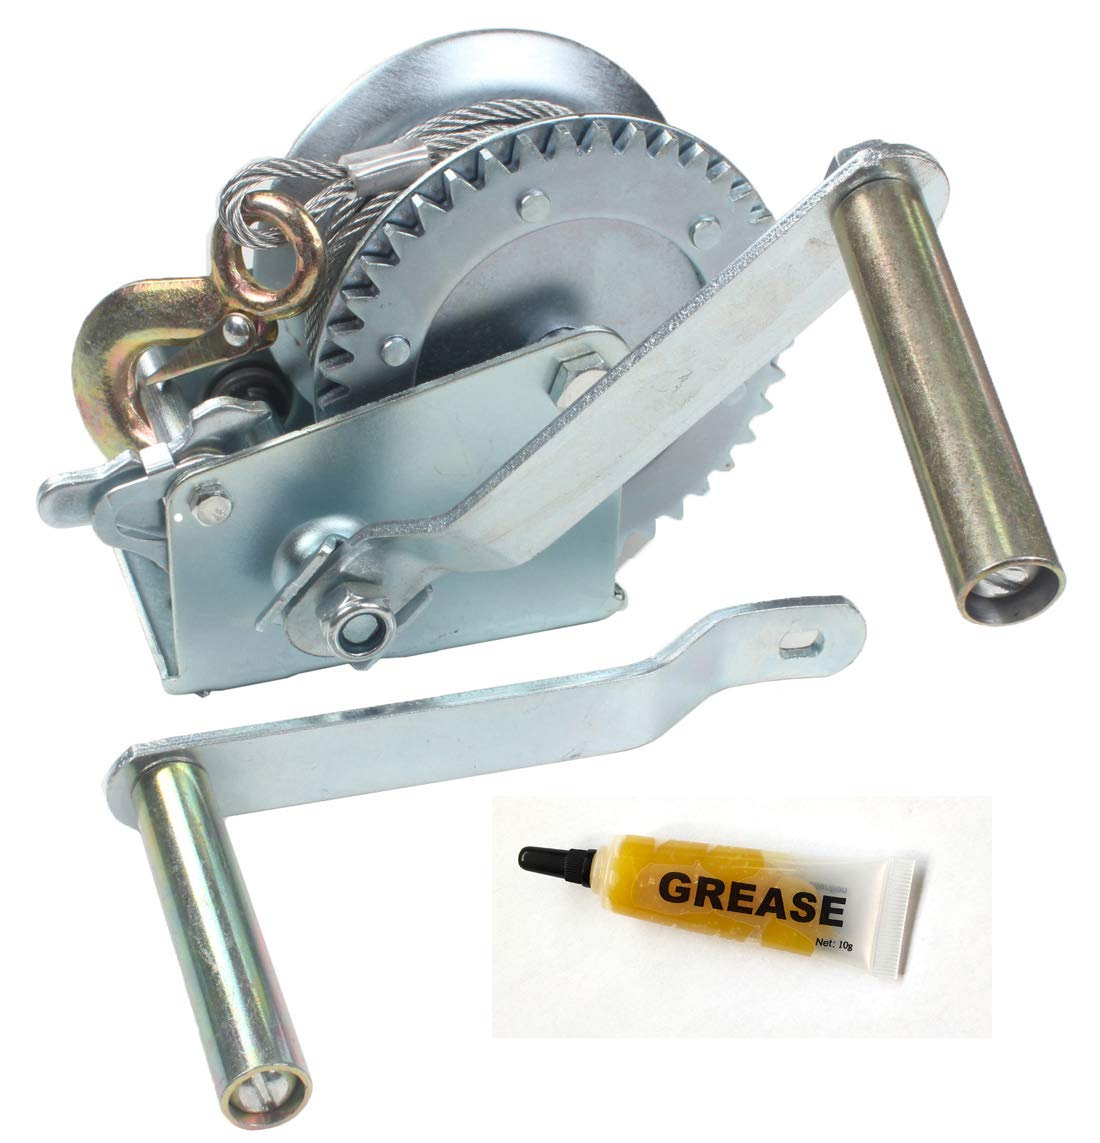 AC-DK 1600 lb - 3500 lb Hand Gear Winch Come with Two Crank Handles! - Manual Operating with Strap & Cable for Boats and Trailers(1600 lb with Cable).